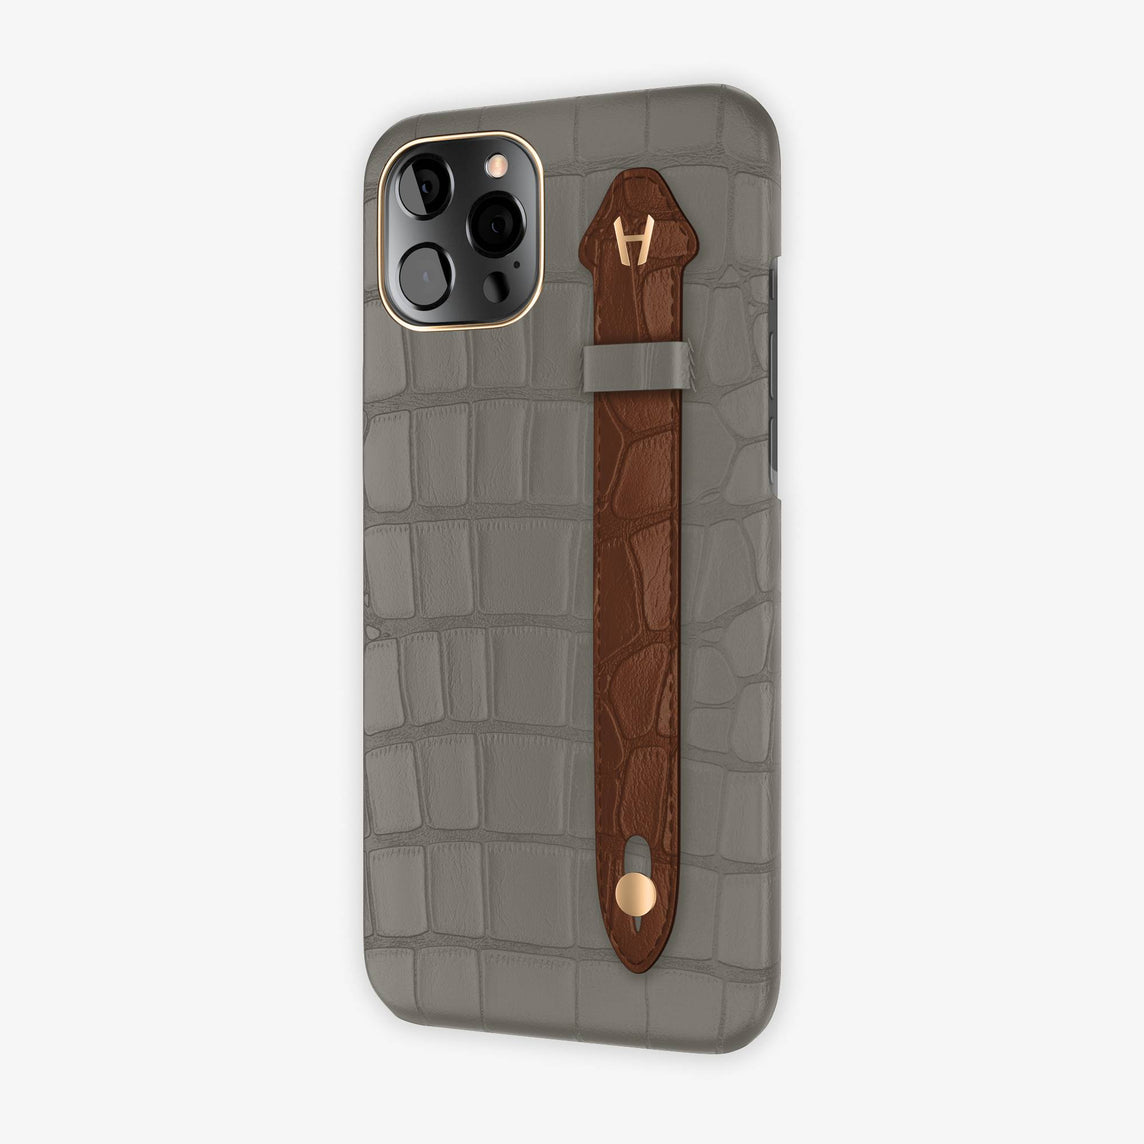 Alligator Side Finger Case iPhone 12 Pro Max | Pearl Grey/Brown - Rose Gold